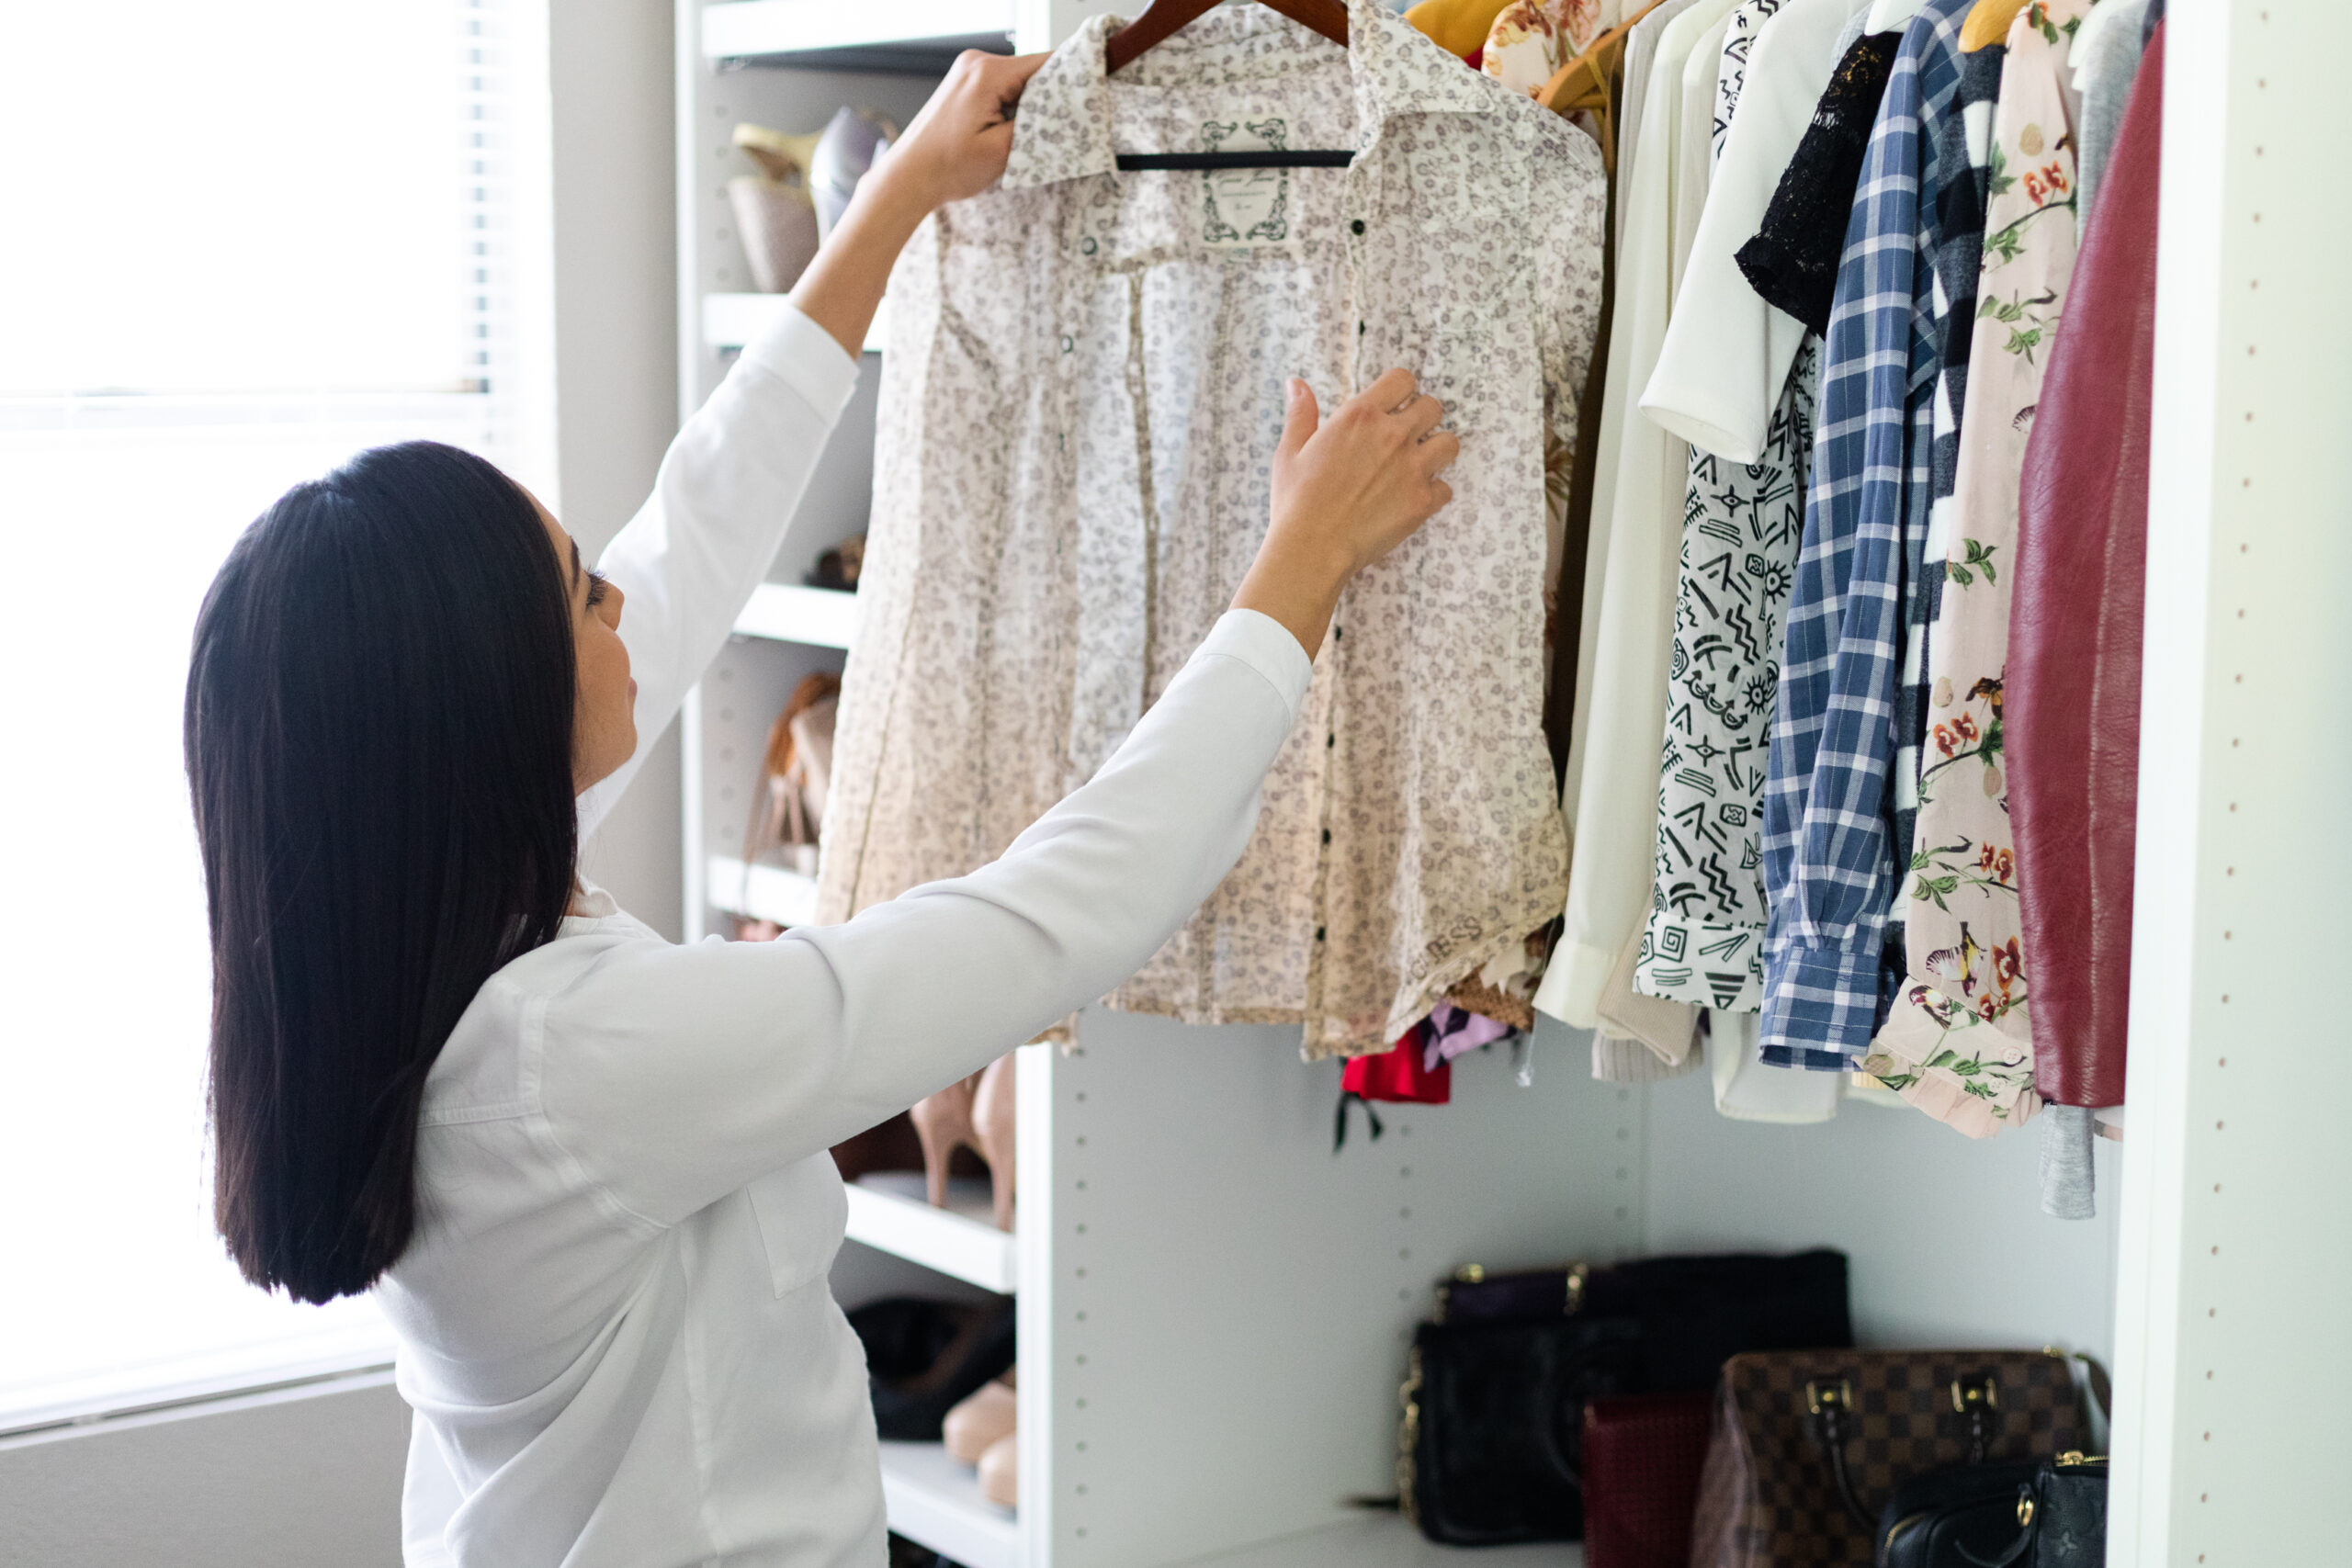 40 Decluttering Goals to Achieve this Month